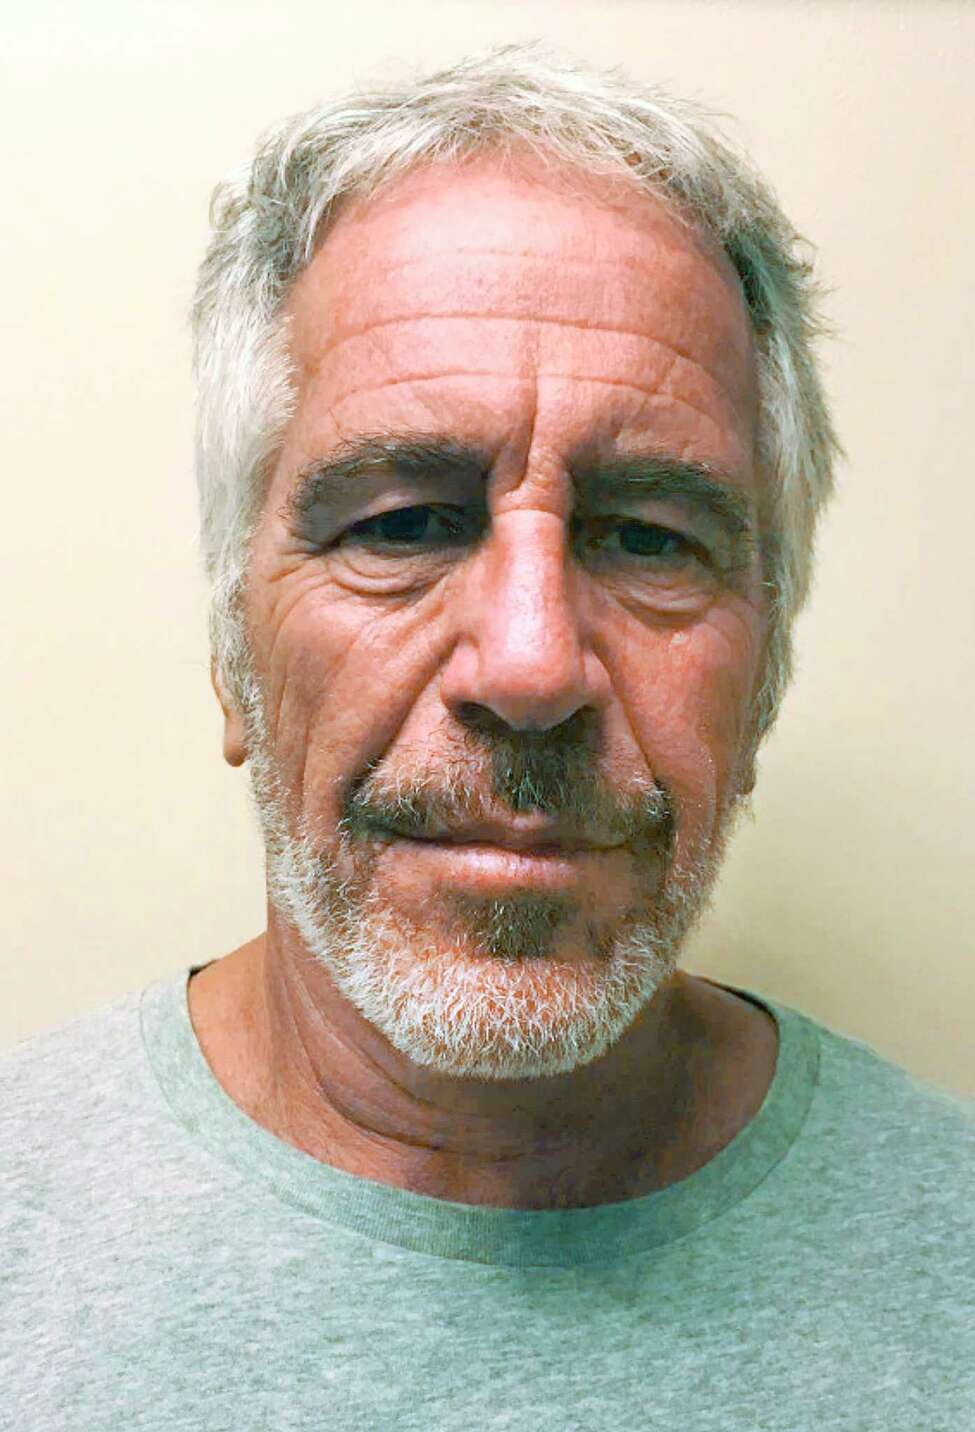 FILE -- A photo provided by the New York State Sex Offender Registry shows Jeffrey Epstein on March 28, 2017. New evidence shows Epstein sexually abused and trafficked hundreds of young women and girls on his private Caribbean island, some as recently as 2018, significantly expanding the scope of his alleged conduct, a top law enforcement official said in a lawsuit filed on Jan. 15, 2020. (New York State Sex Offender Registry via The New York Times) -- FOR EDITORIAL USE ONLY. --